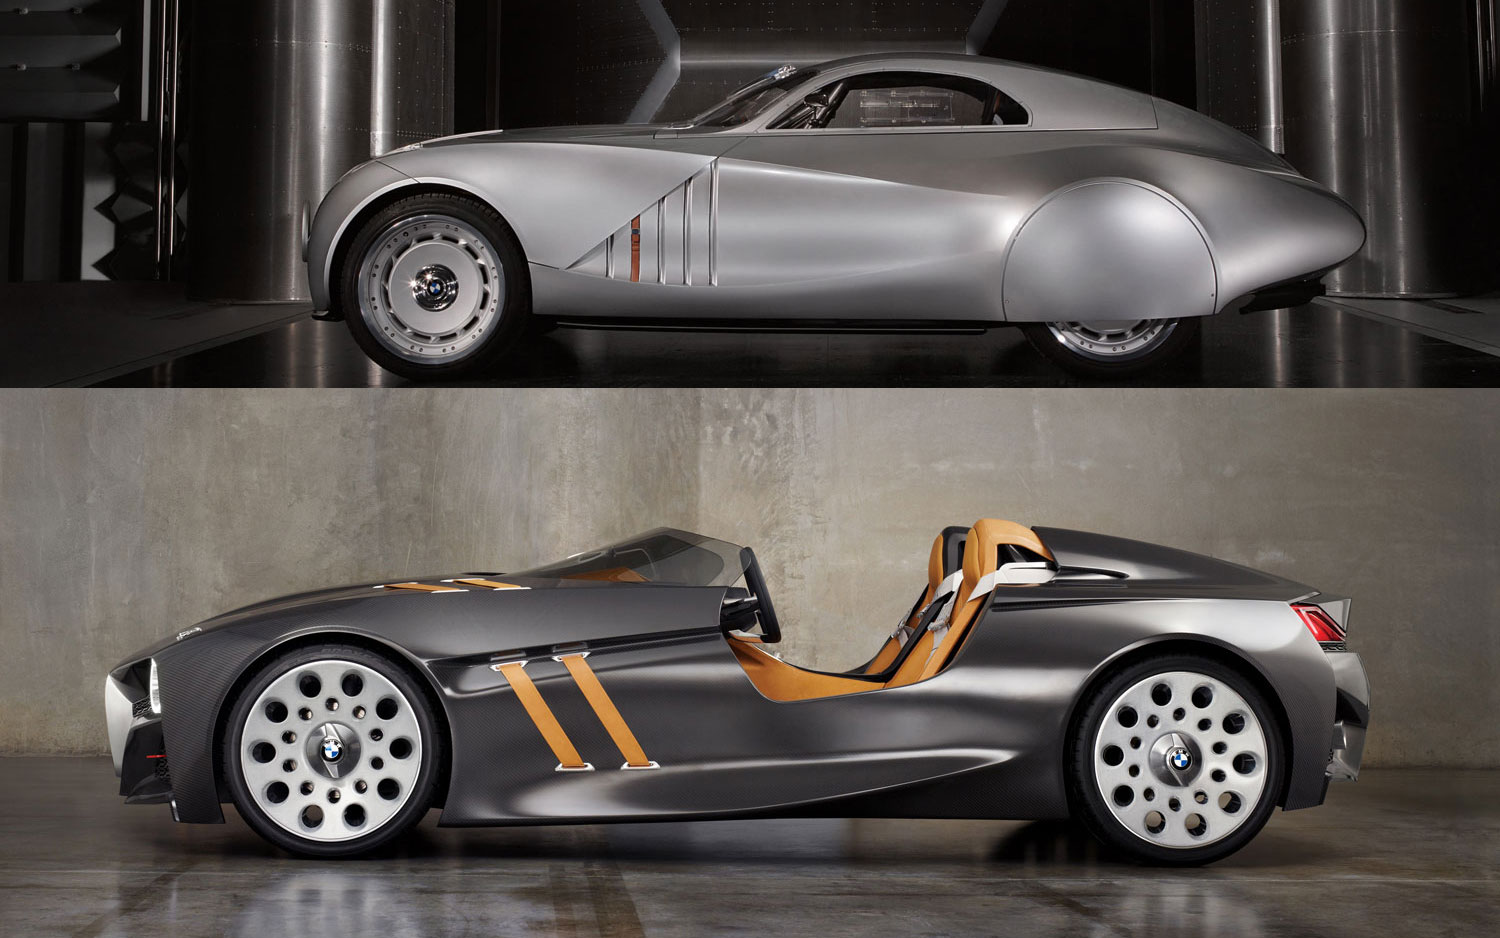 BMW 328 Hommage vs. Concept Coupé Mille Miglia 2006: Which Is better ...